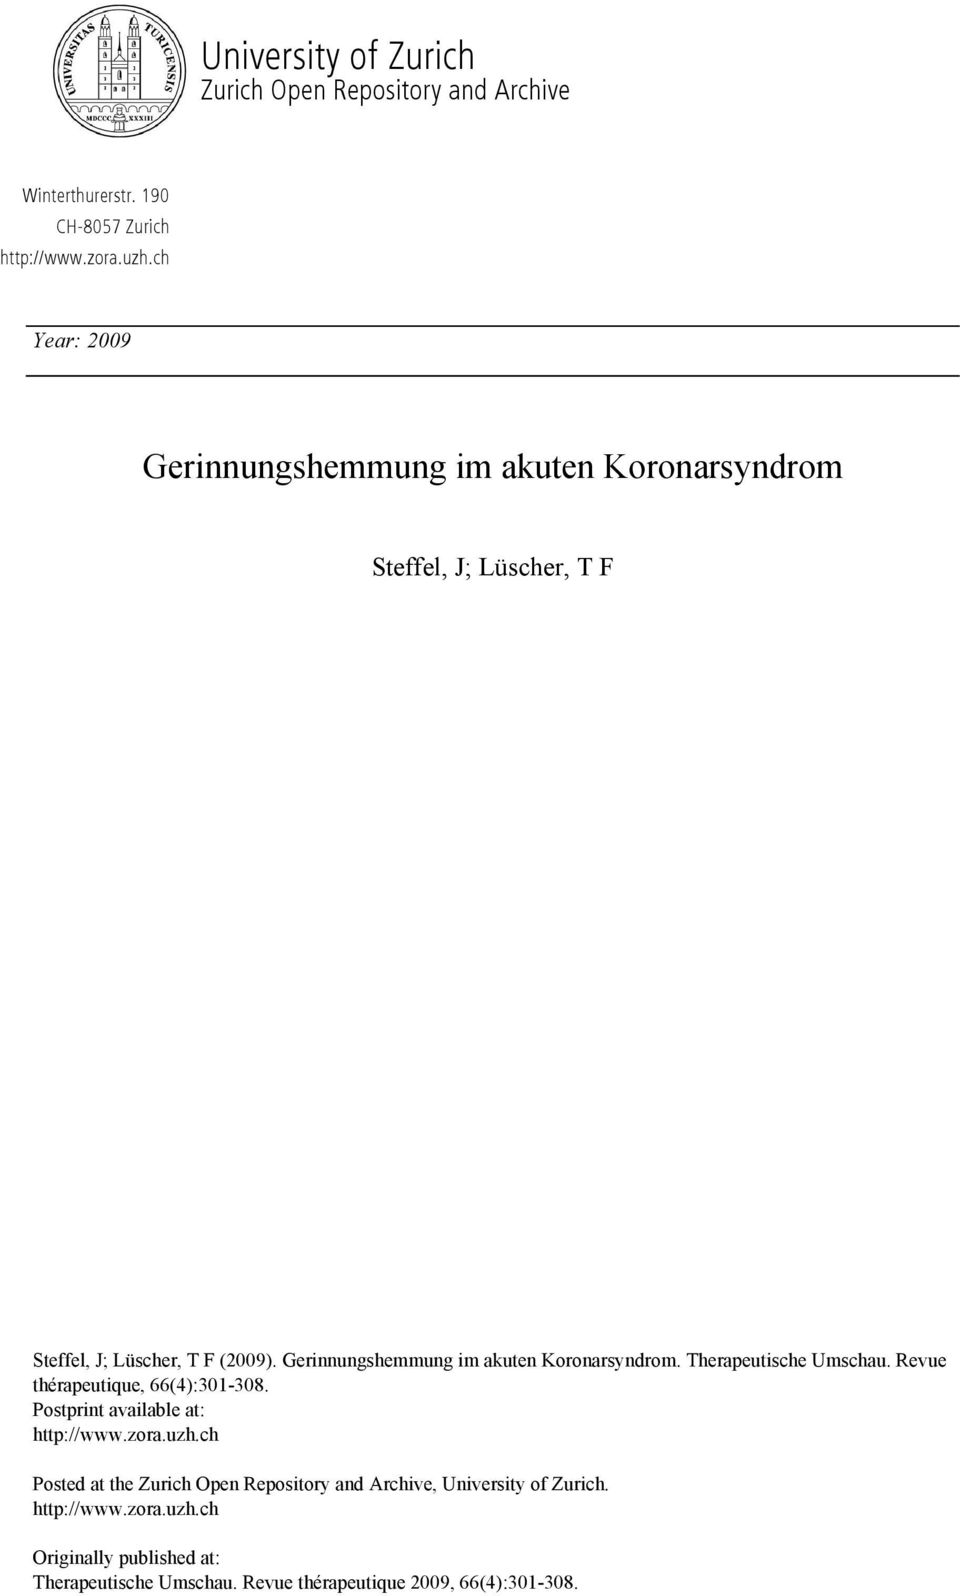 Gerinnungshemmung im akuten Koronarsyndrom. Therapeutische Umschau. Revue thérapeutique, 66(4):301-308. Postprint available at: http://www.